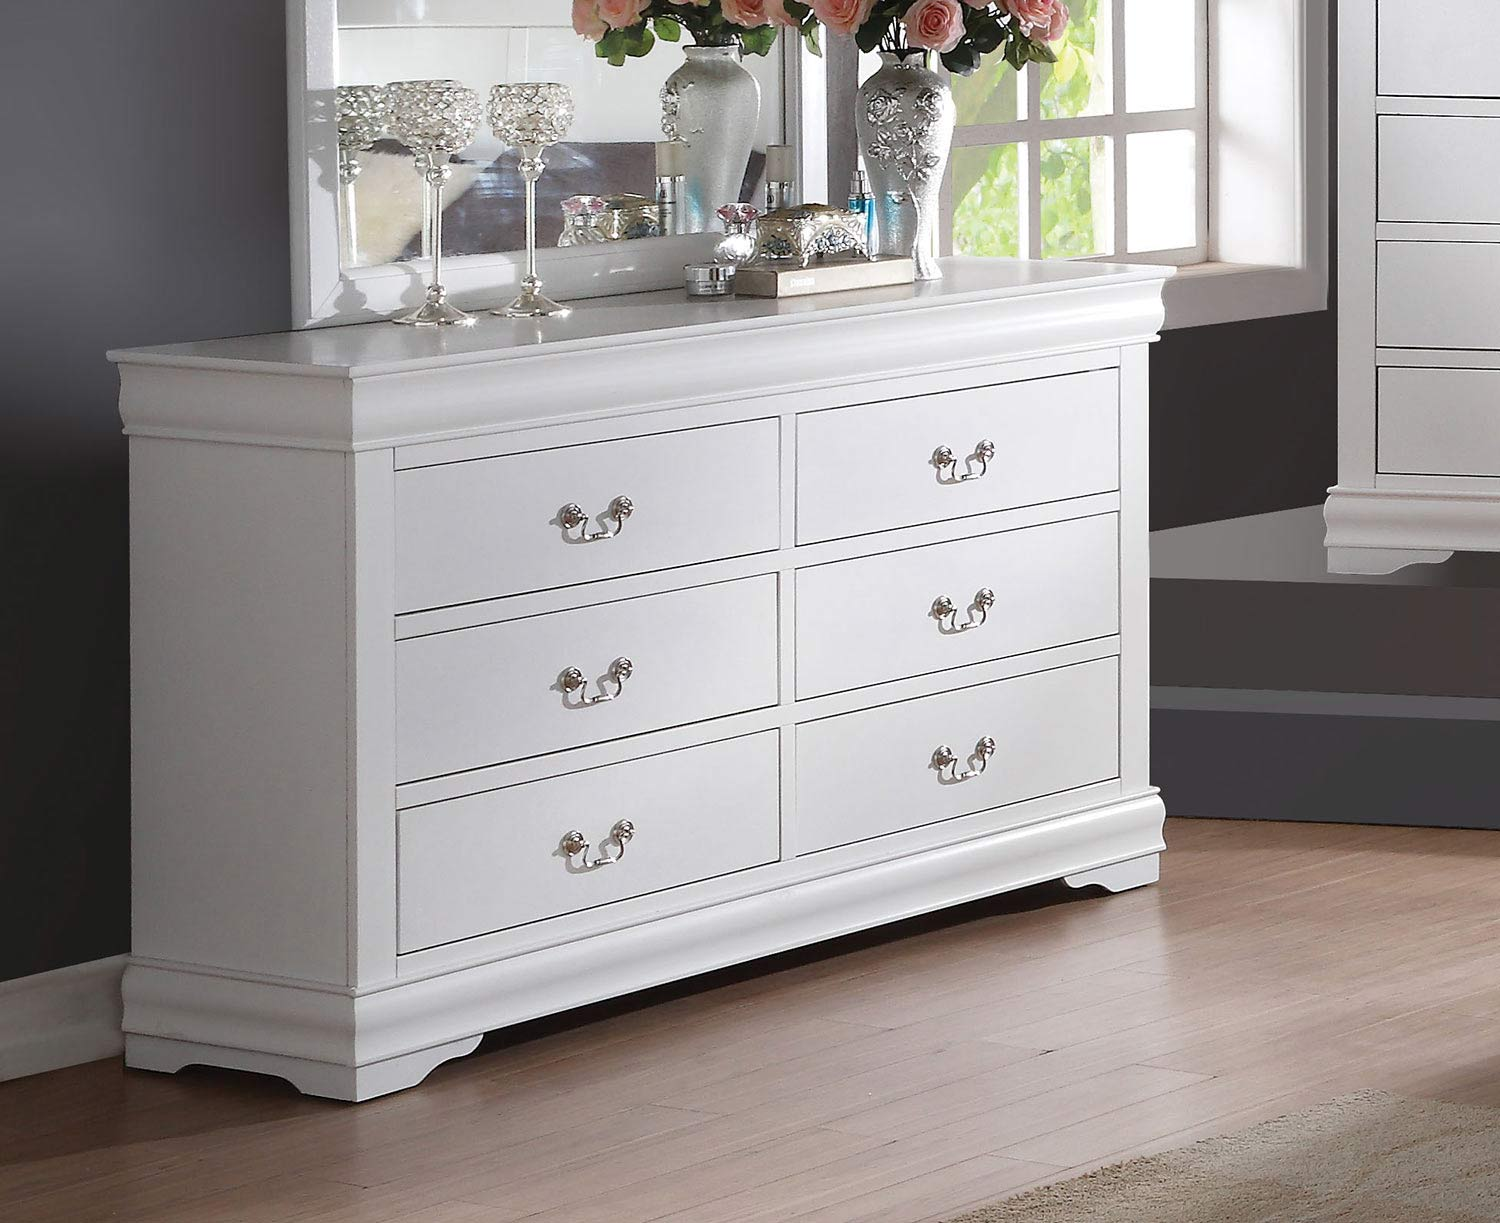 Acme Louis Philippe Dresser - White